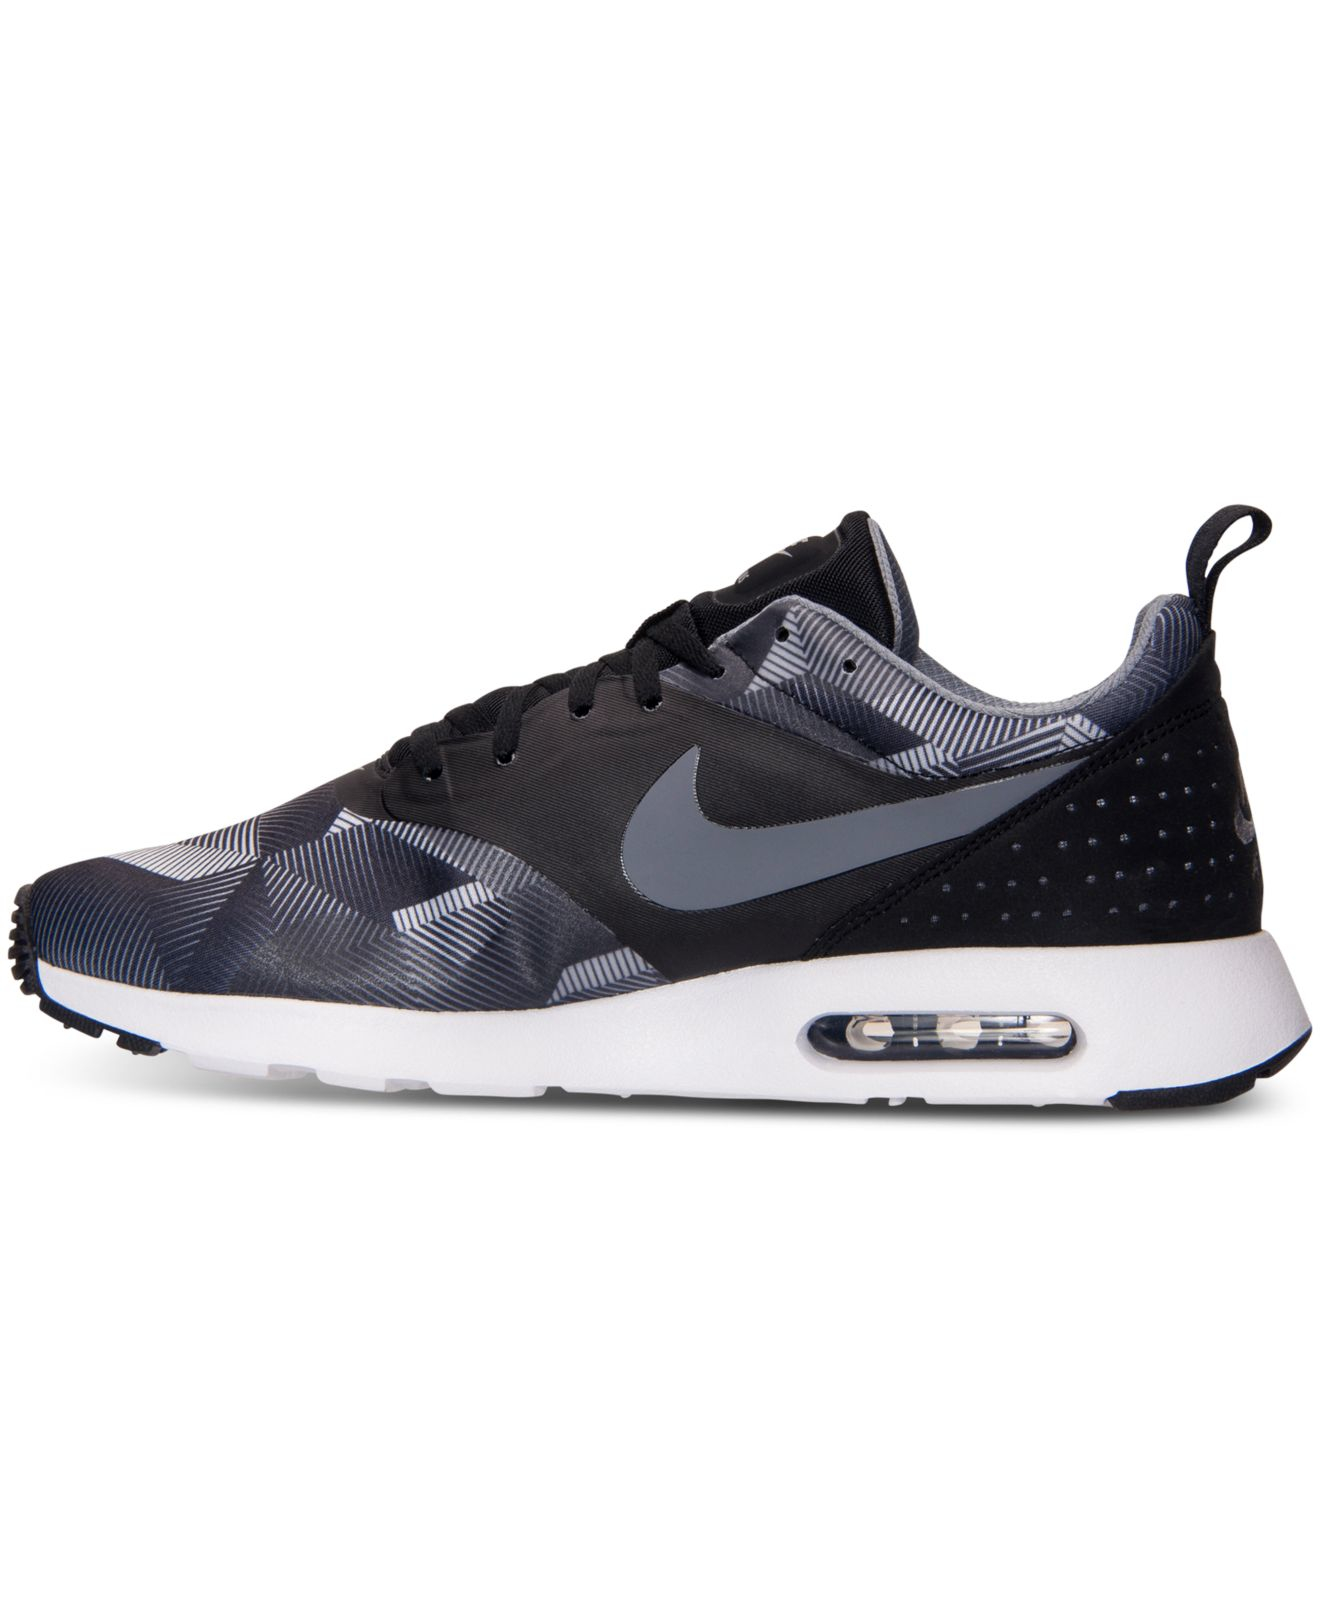 Mens Nike Gray Old School Shoes